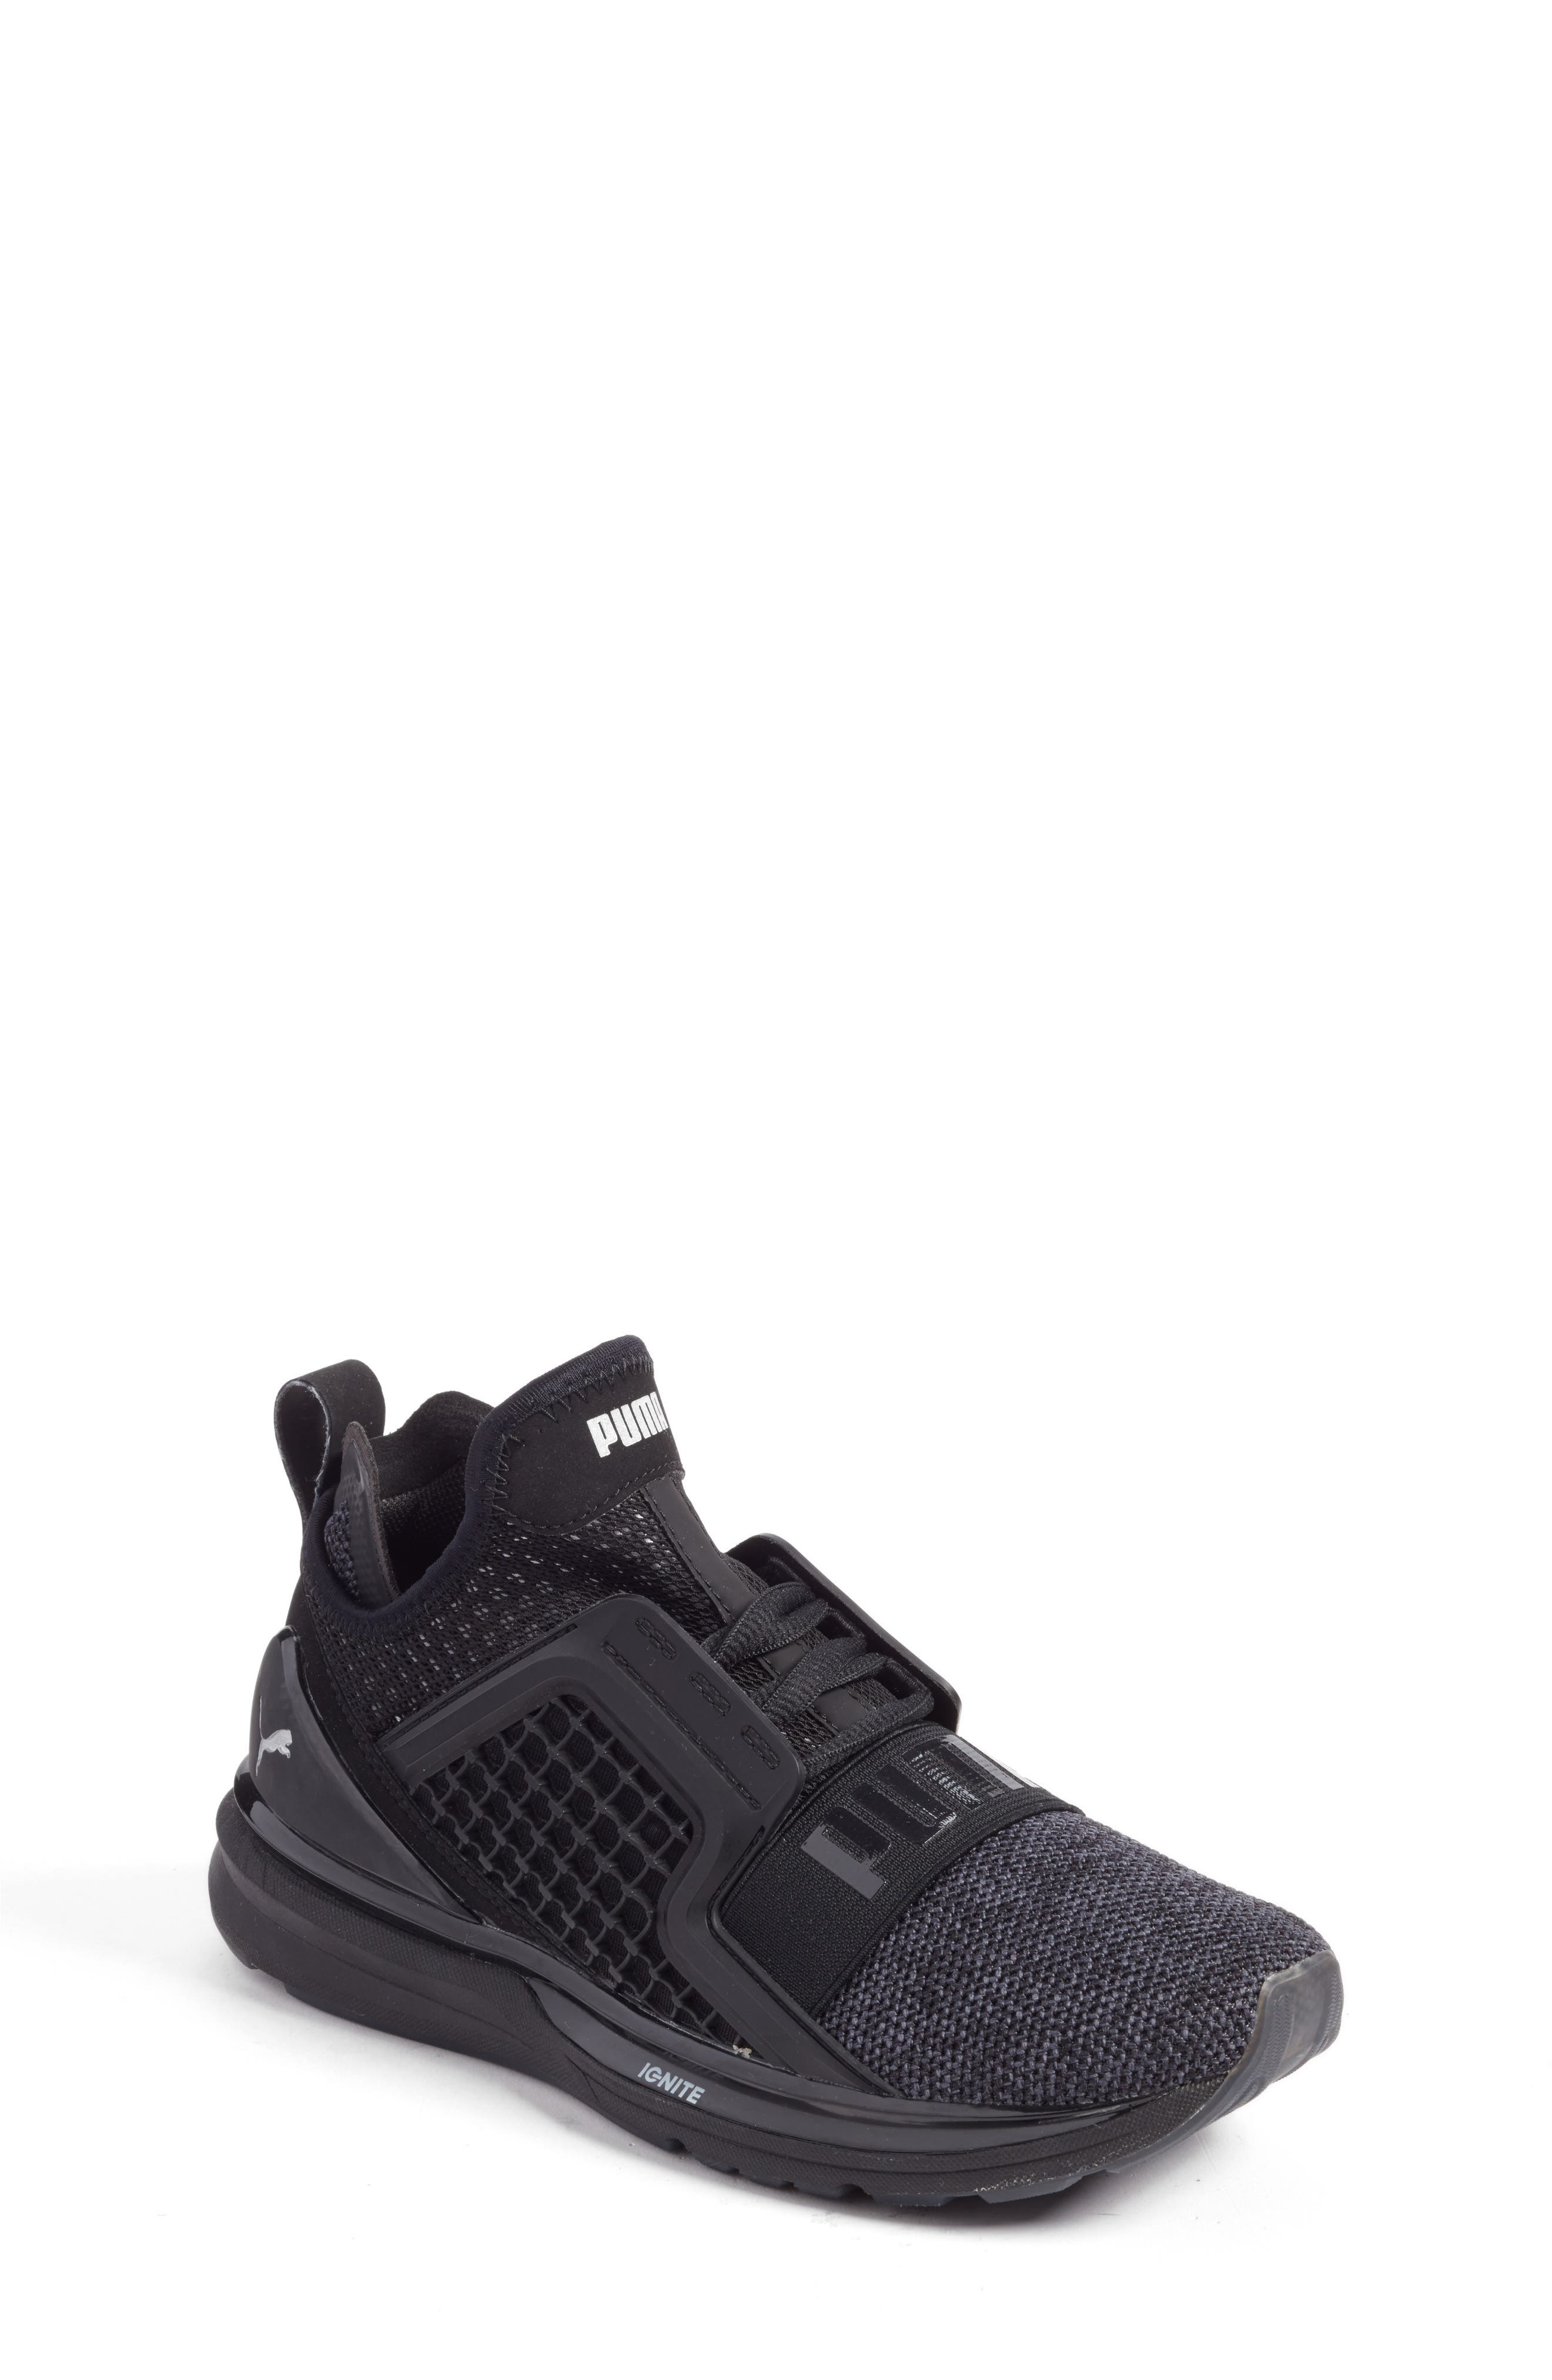 PUMA Ignite Limitless Sneaker (Big Kid)